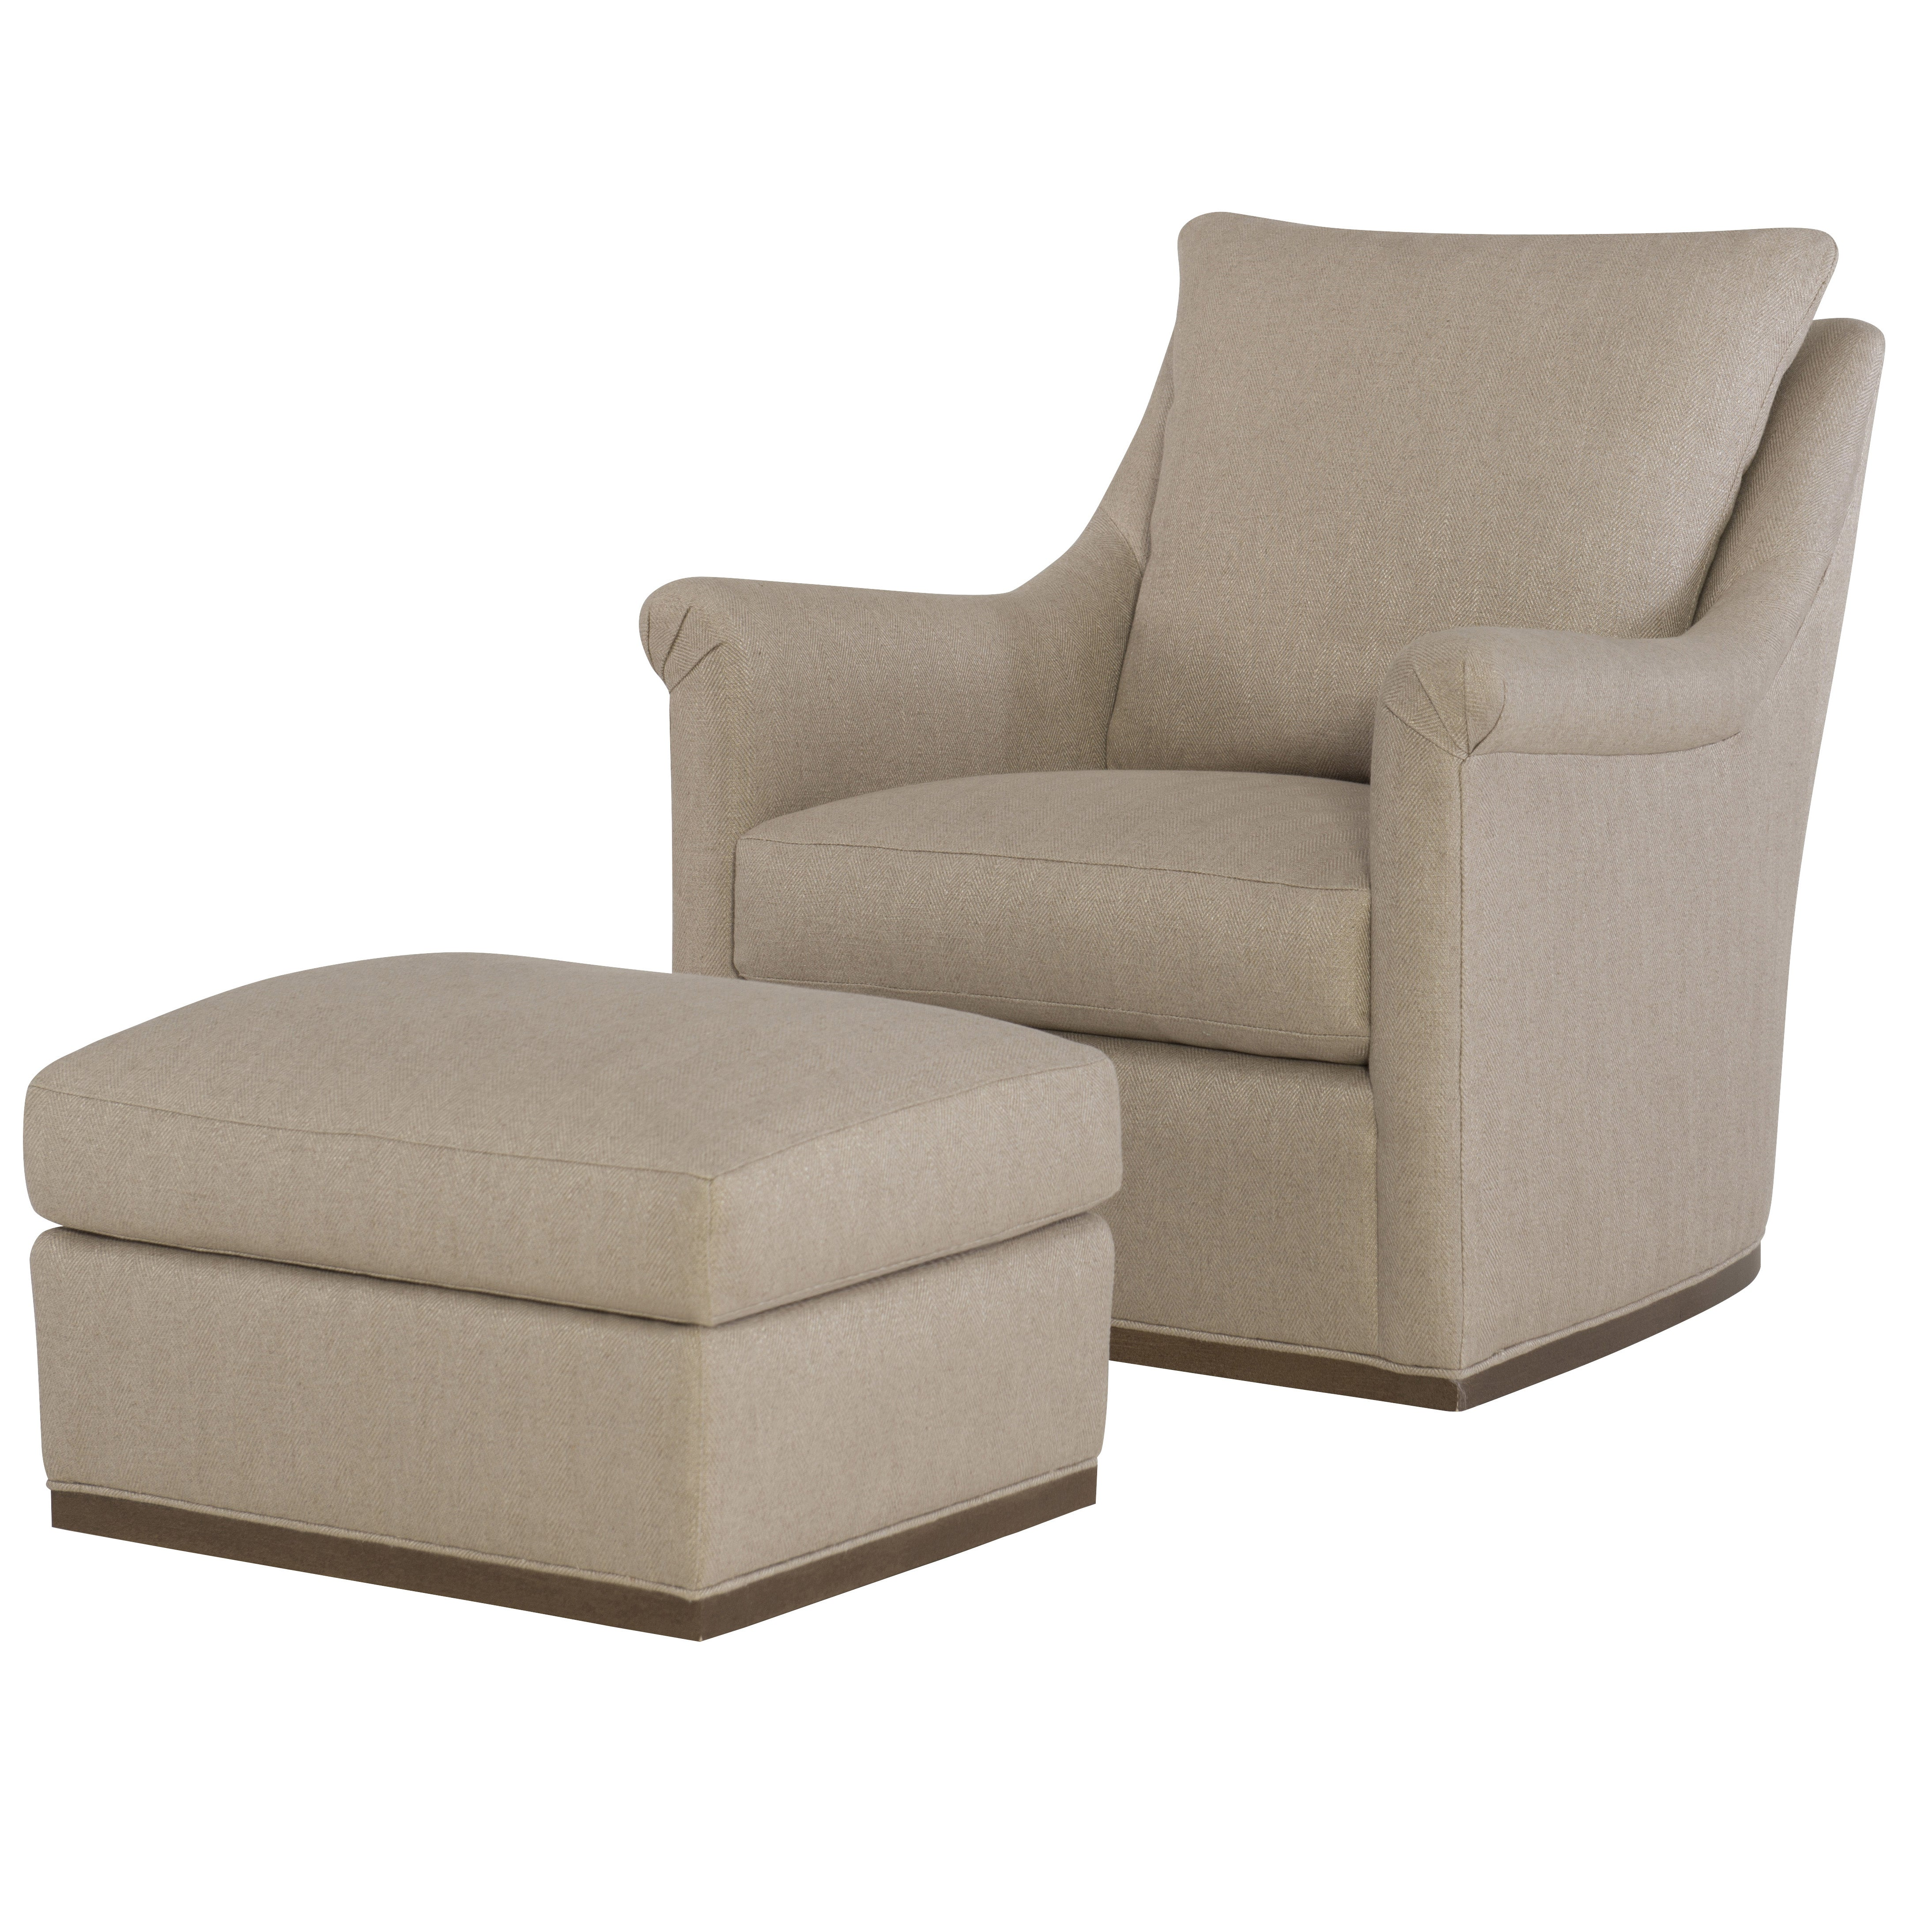 Houston Swivel Chair